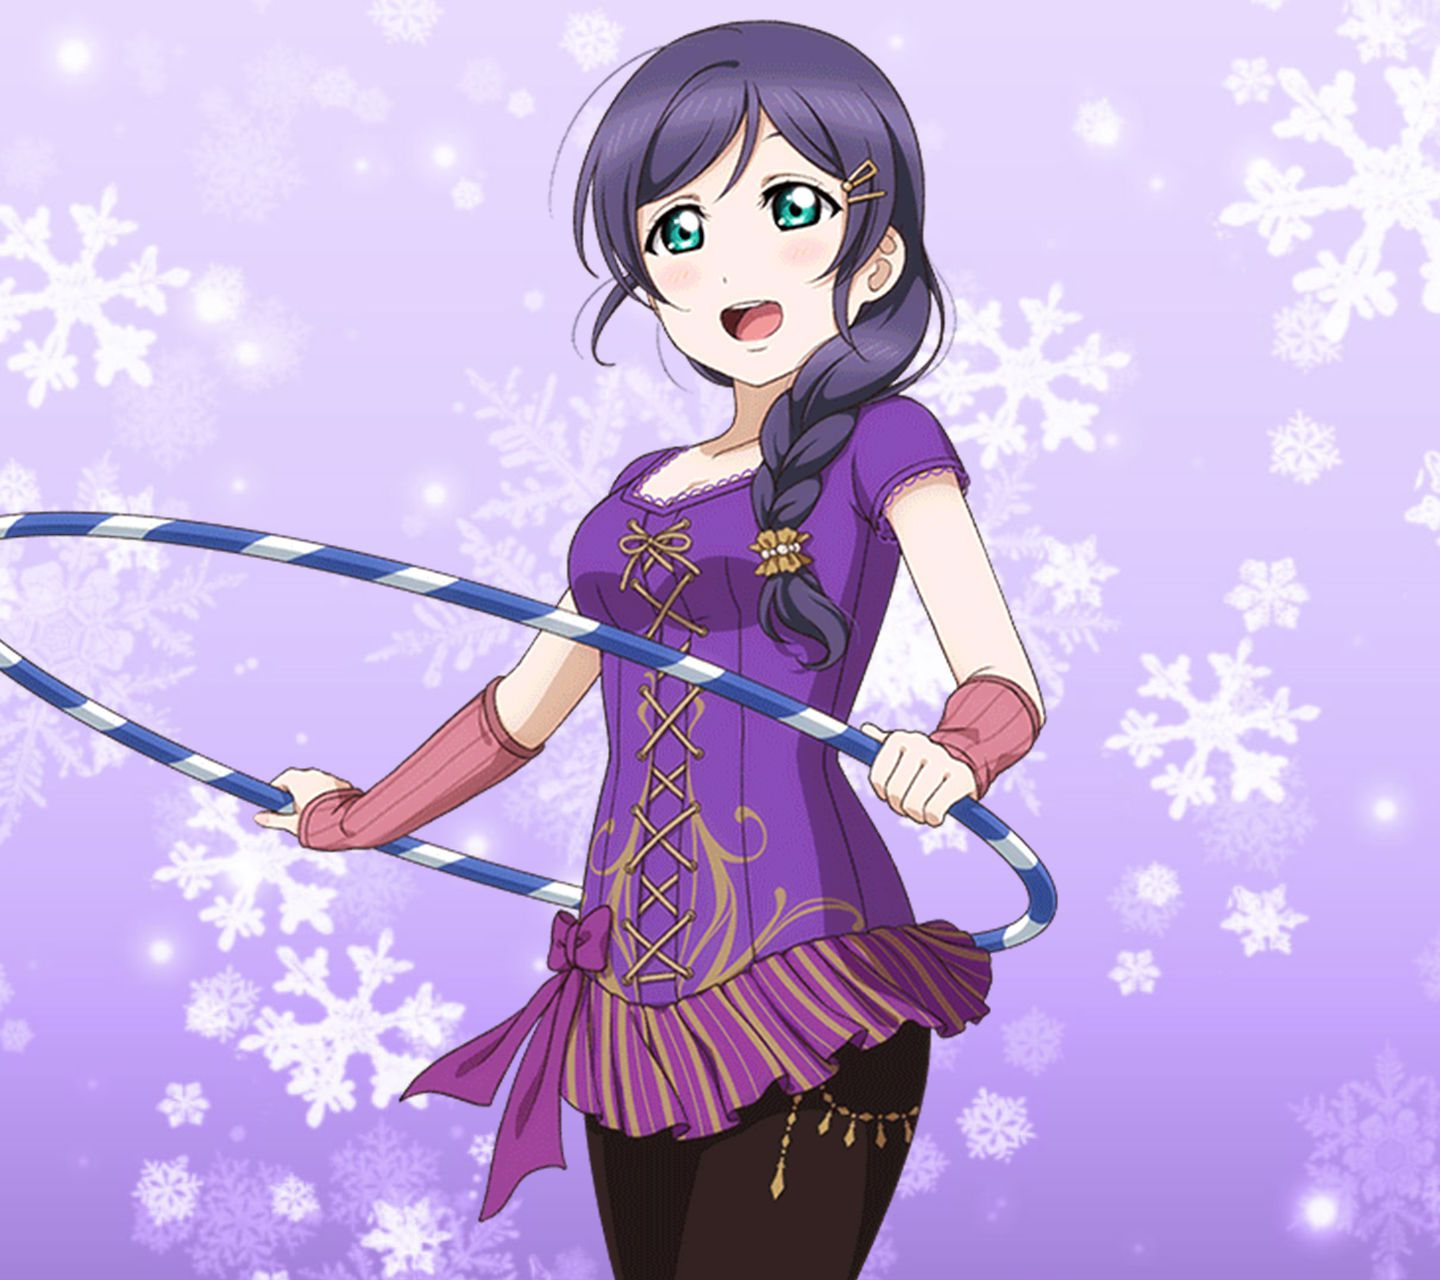 27184_lovelive_Android